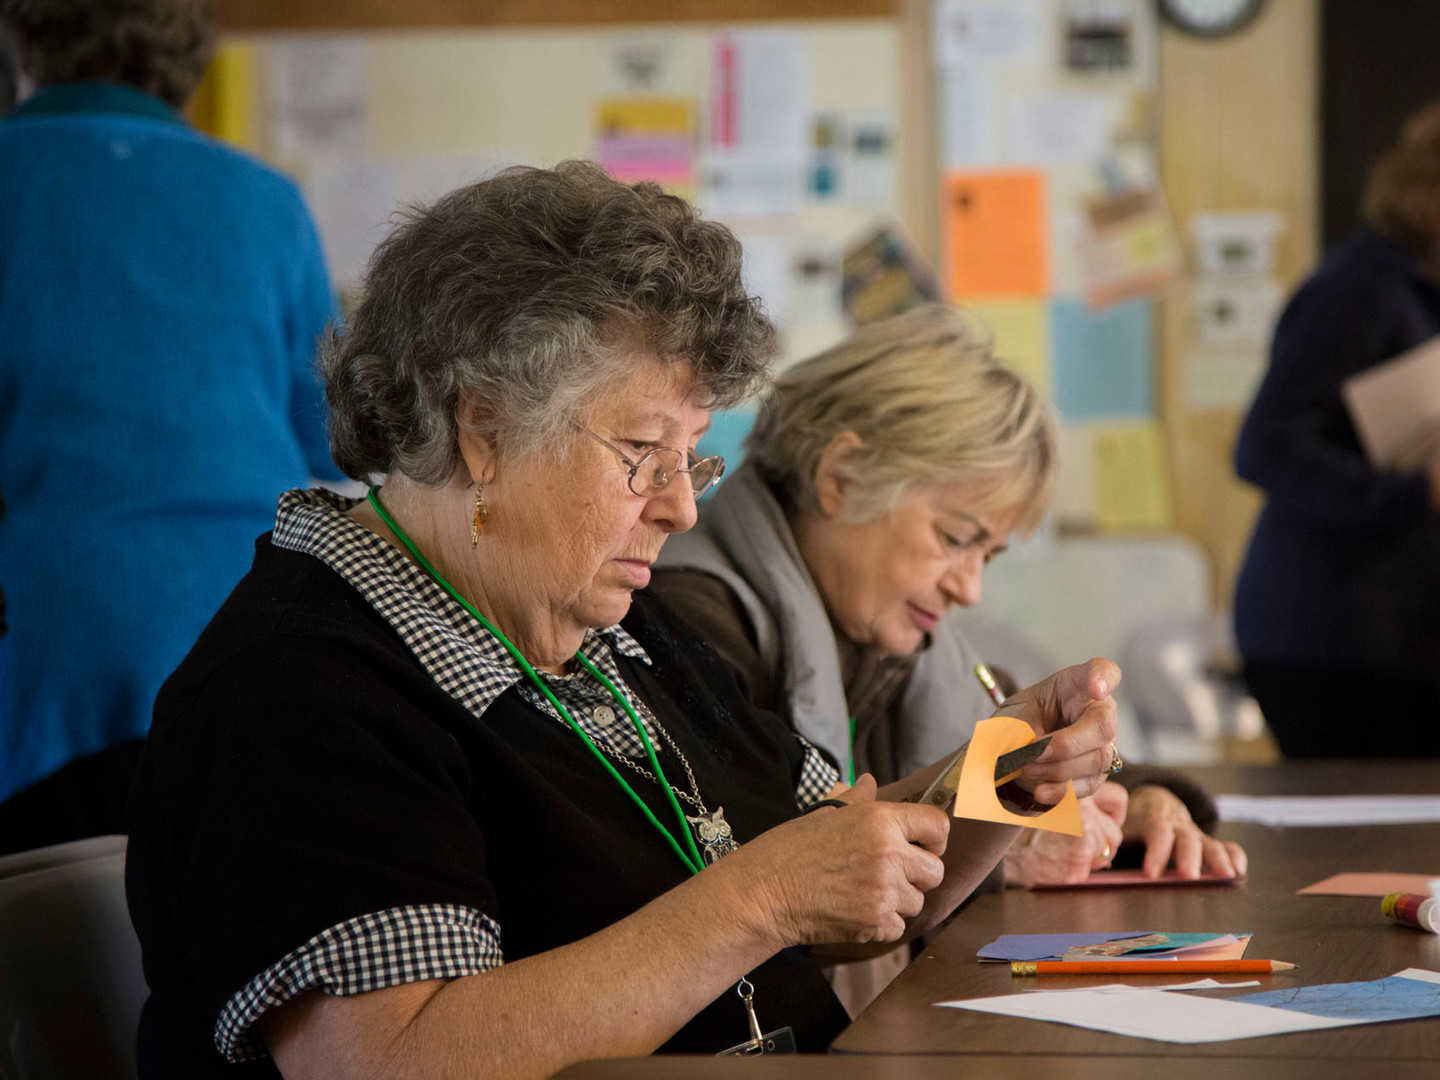 Letha & Susan creating family history quilt-squares